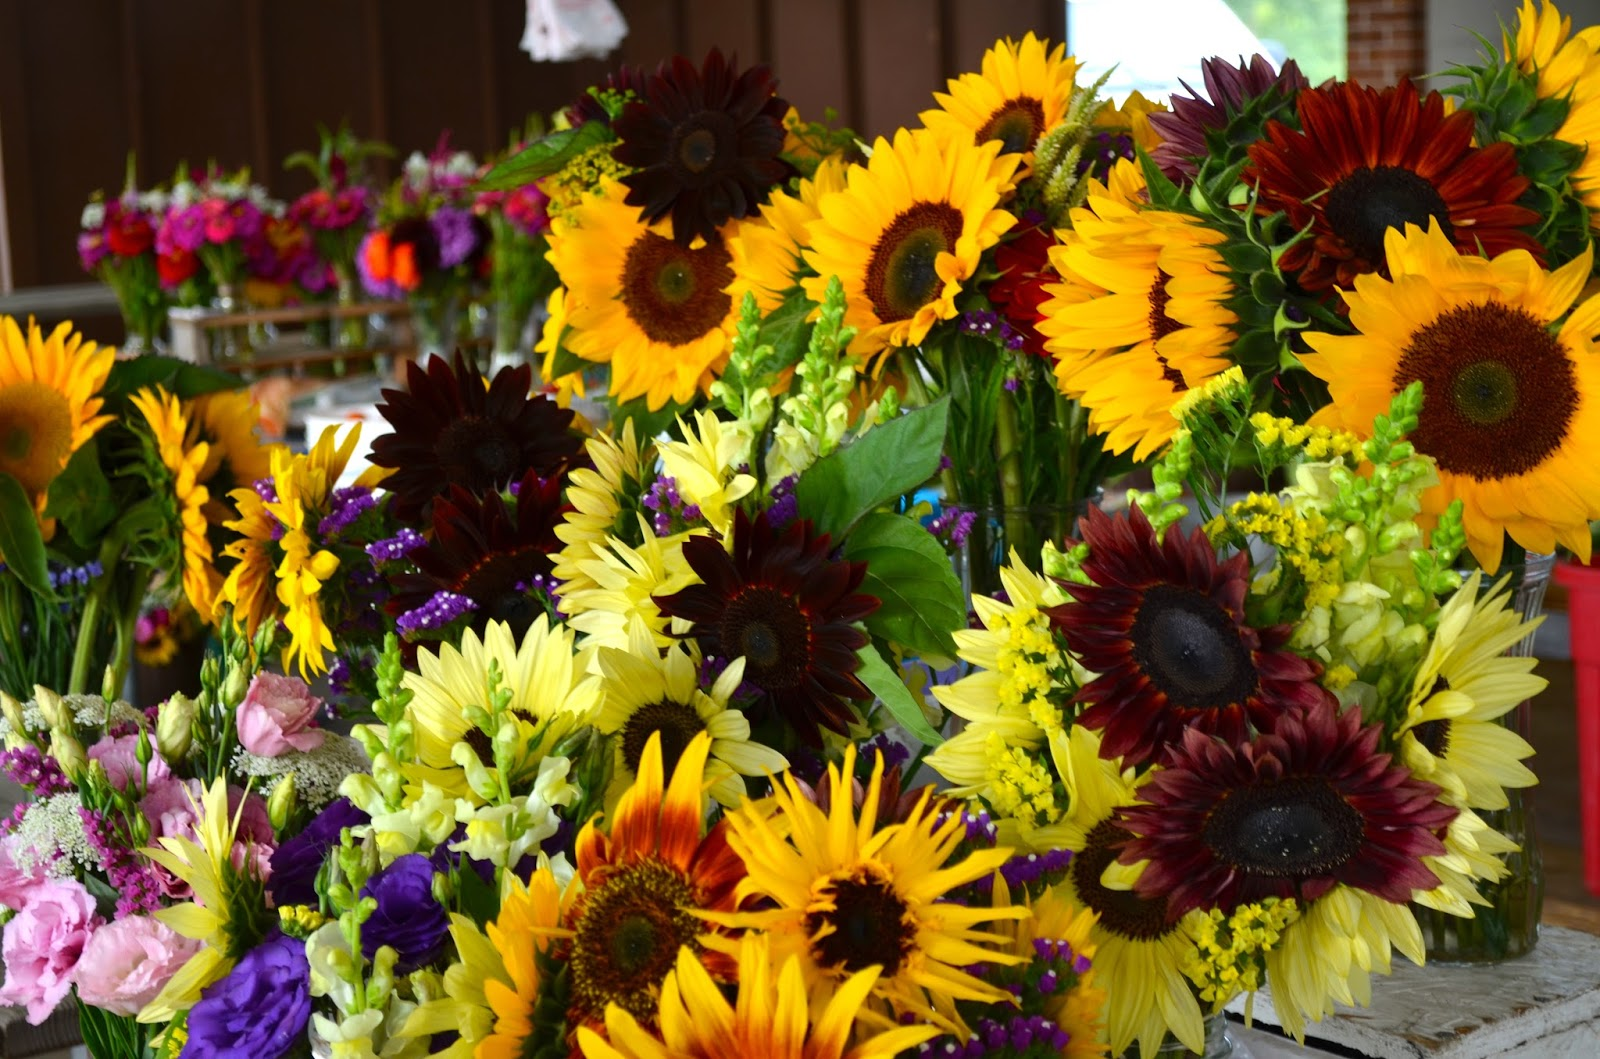 Flowers at Meridian Farmer's Market